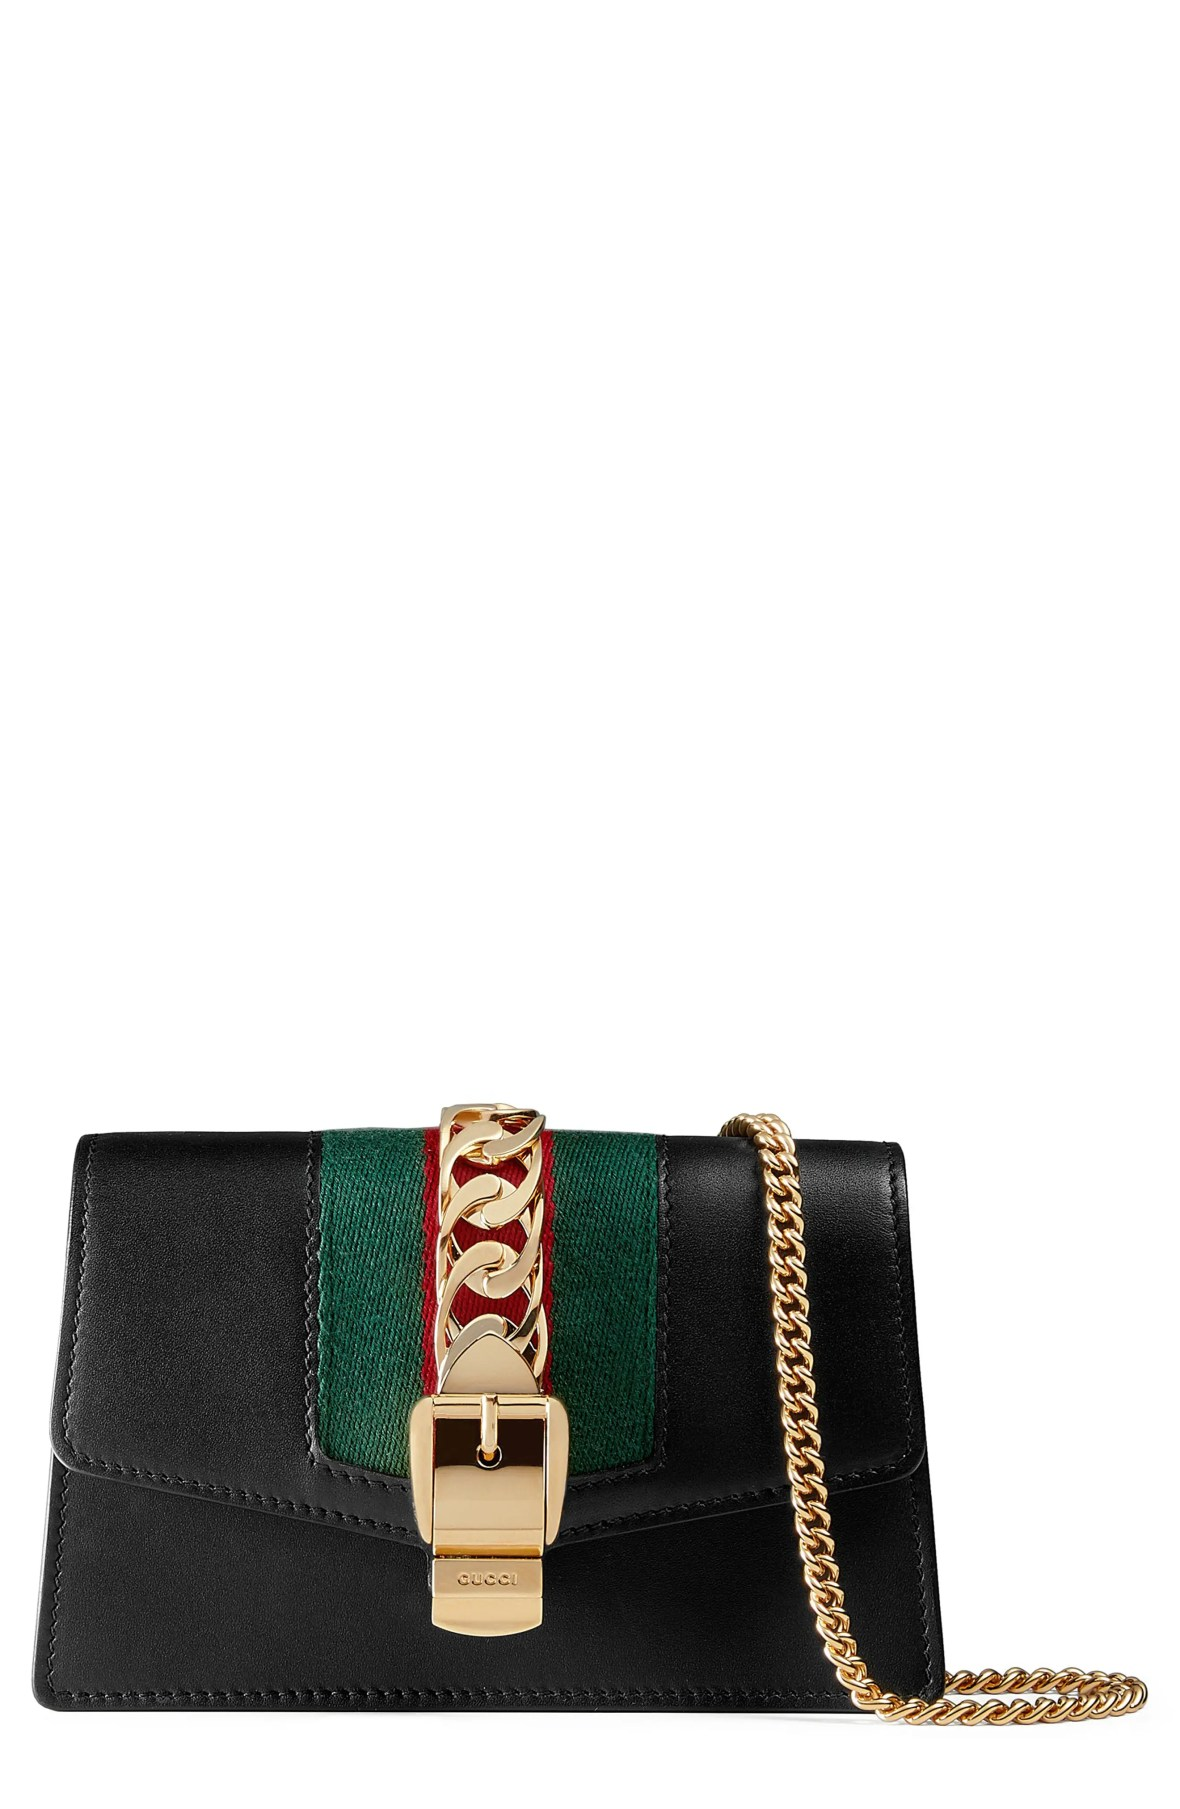 Gucci Super Mini Sylvie Chain Wallet